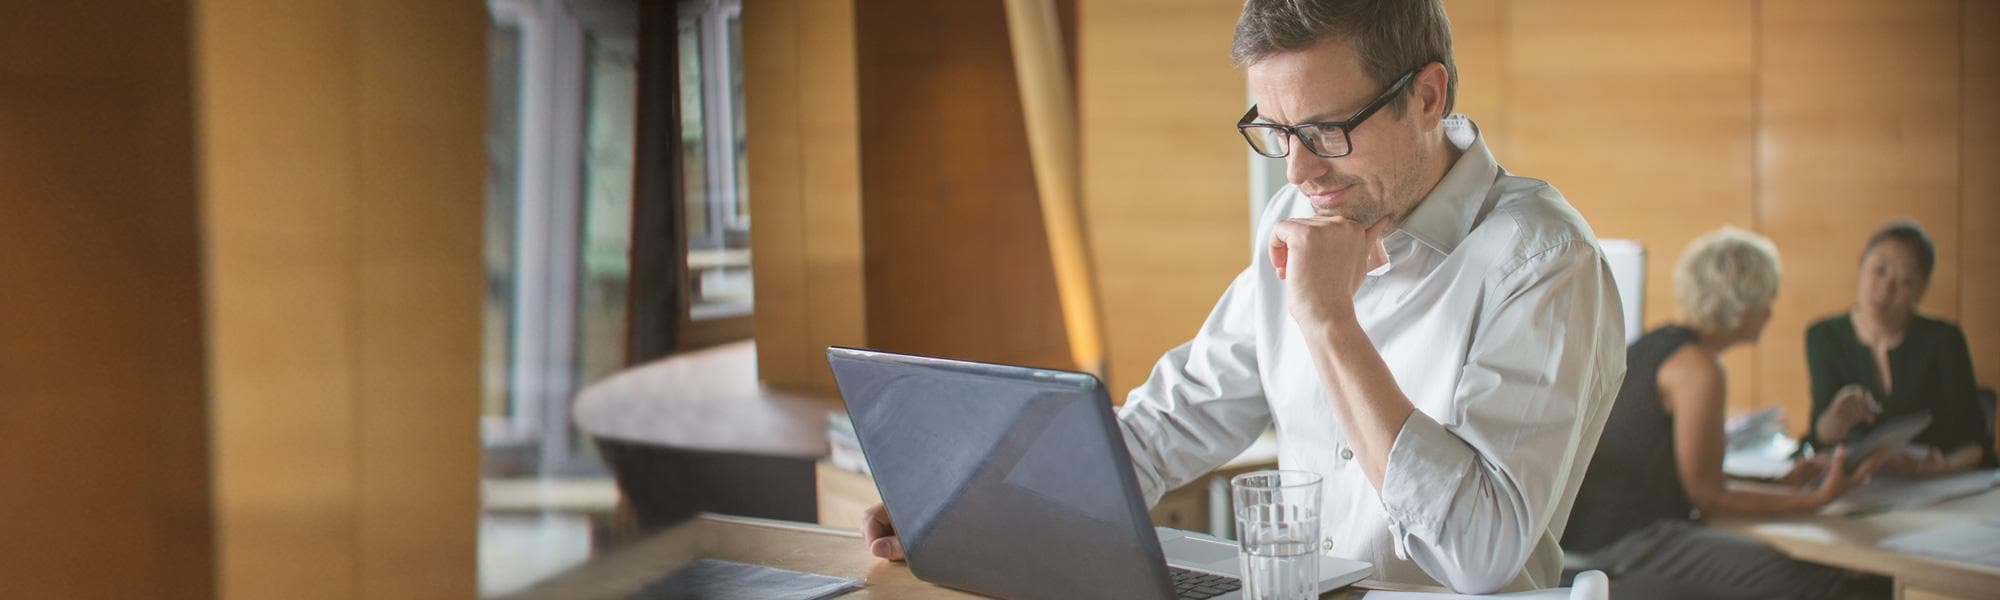 Man shown working on laptop at desk